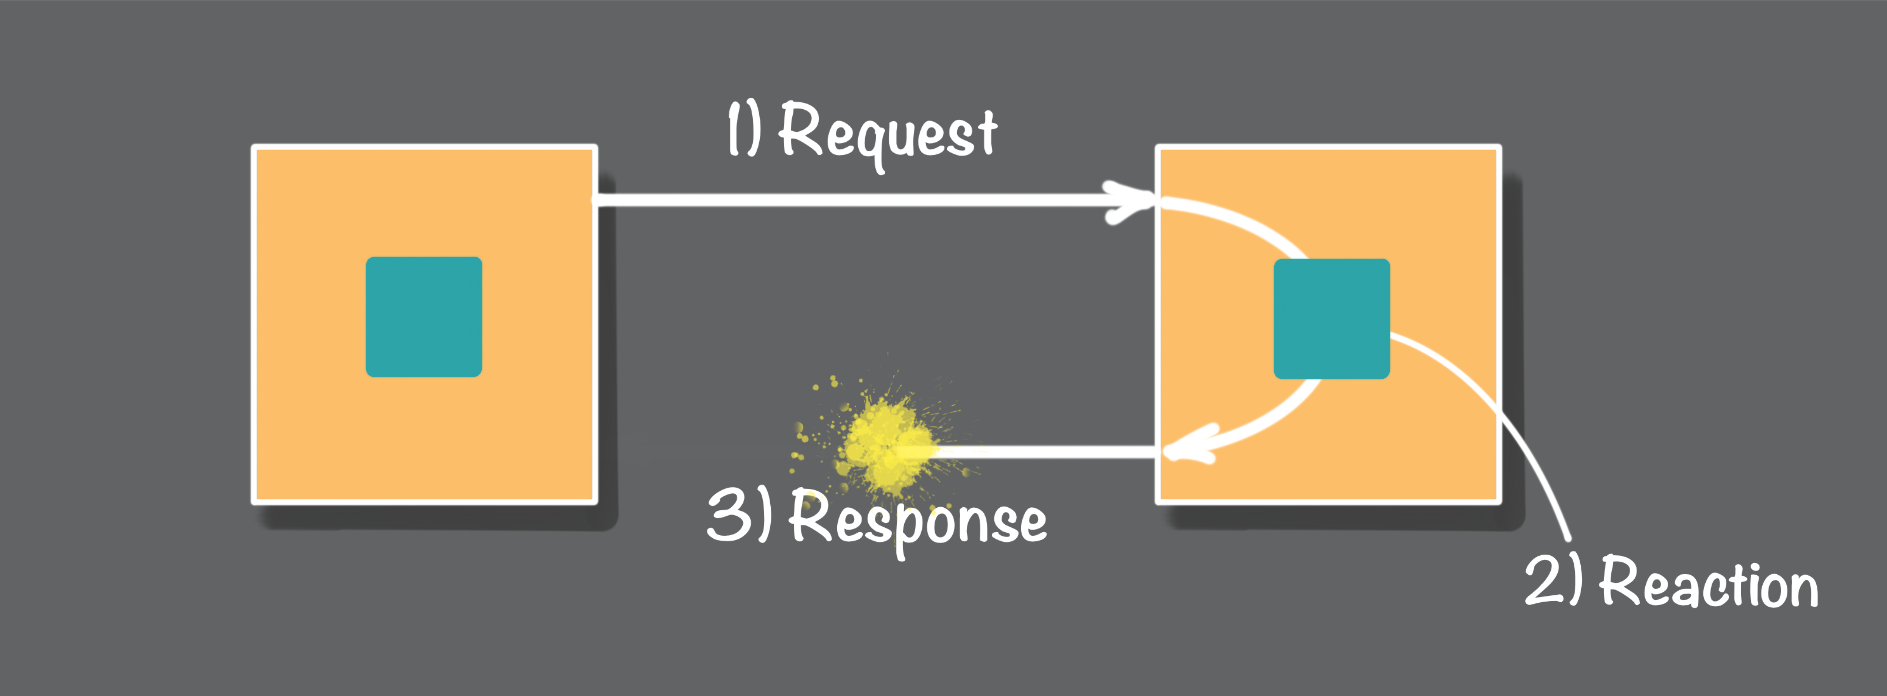 Figure 4: Message response network failures